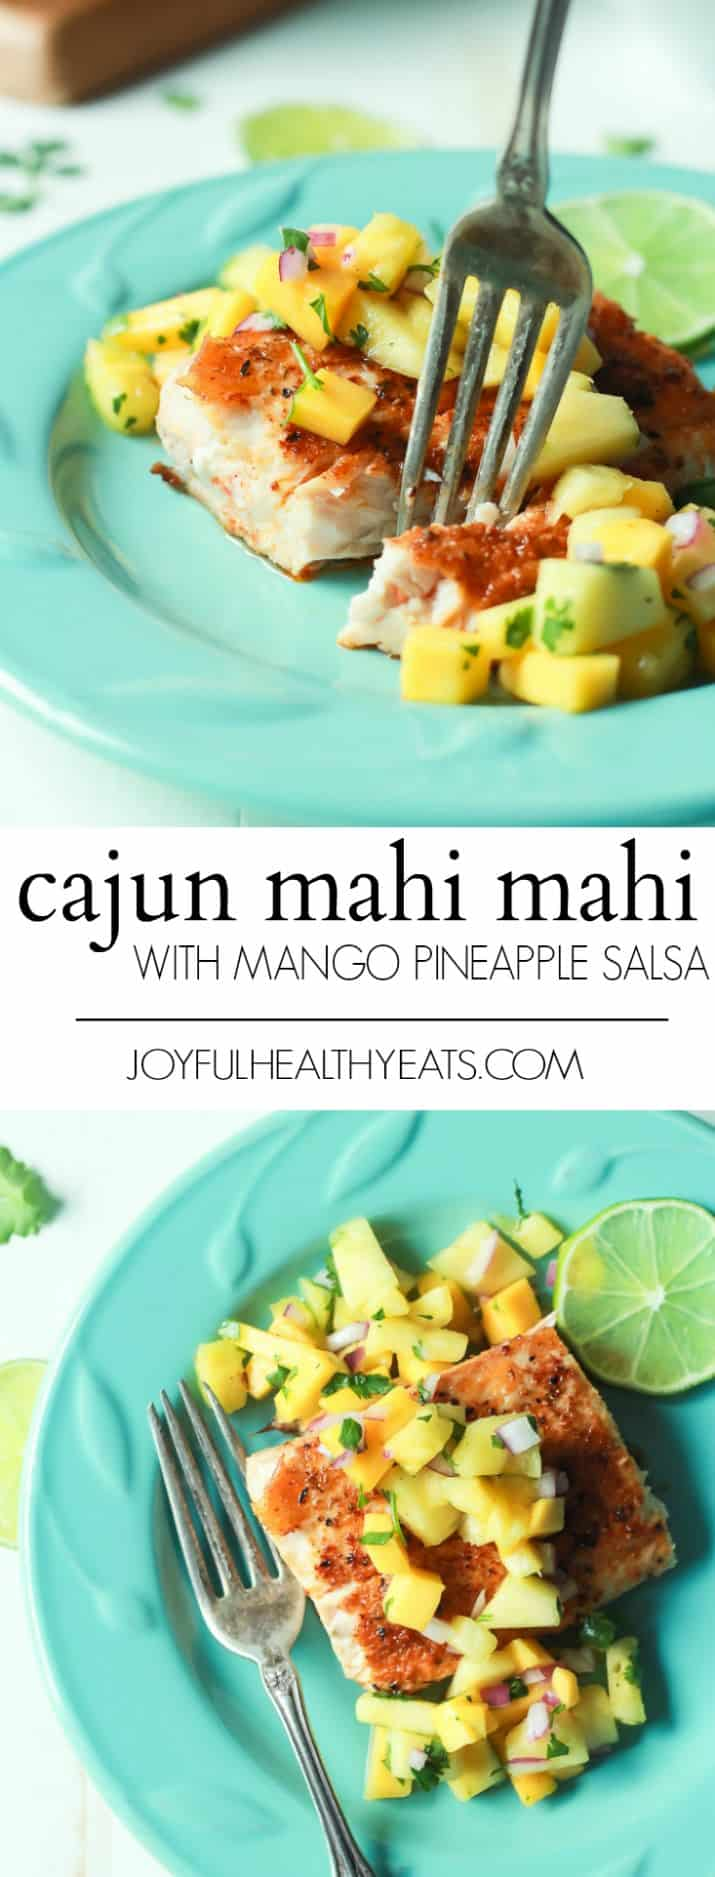 A collage of two images of Pan Seared Cajun Mahi Mahi with a fresh Mango Pineapple Salsa and recipe title text